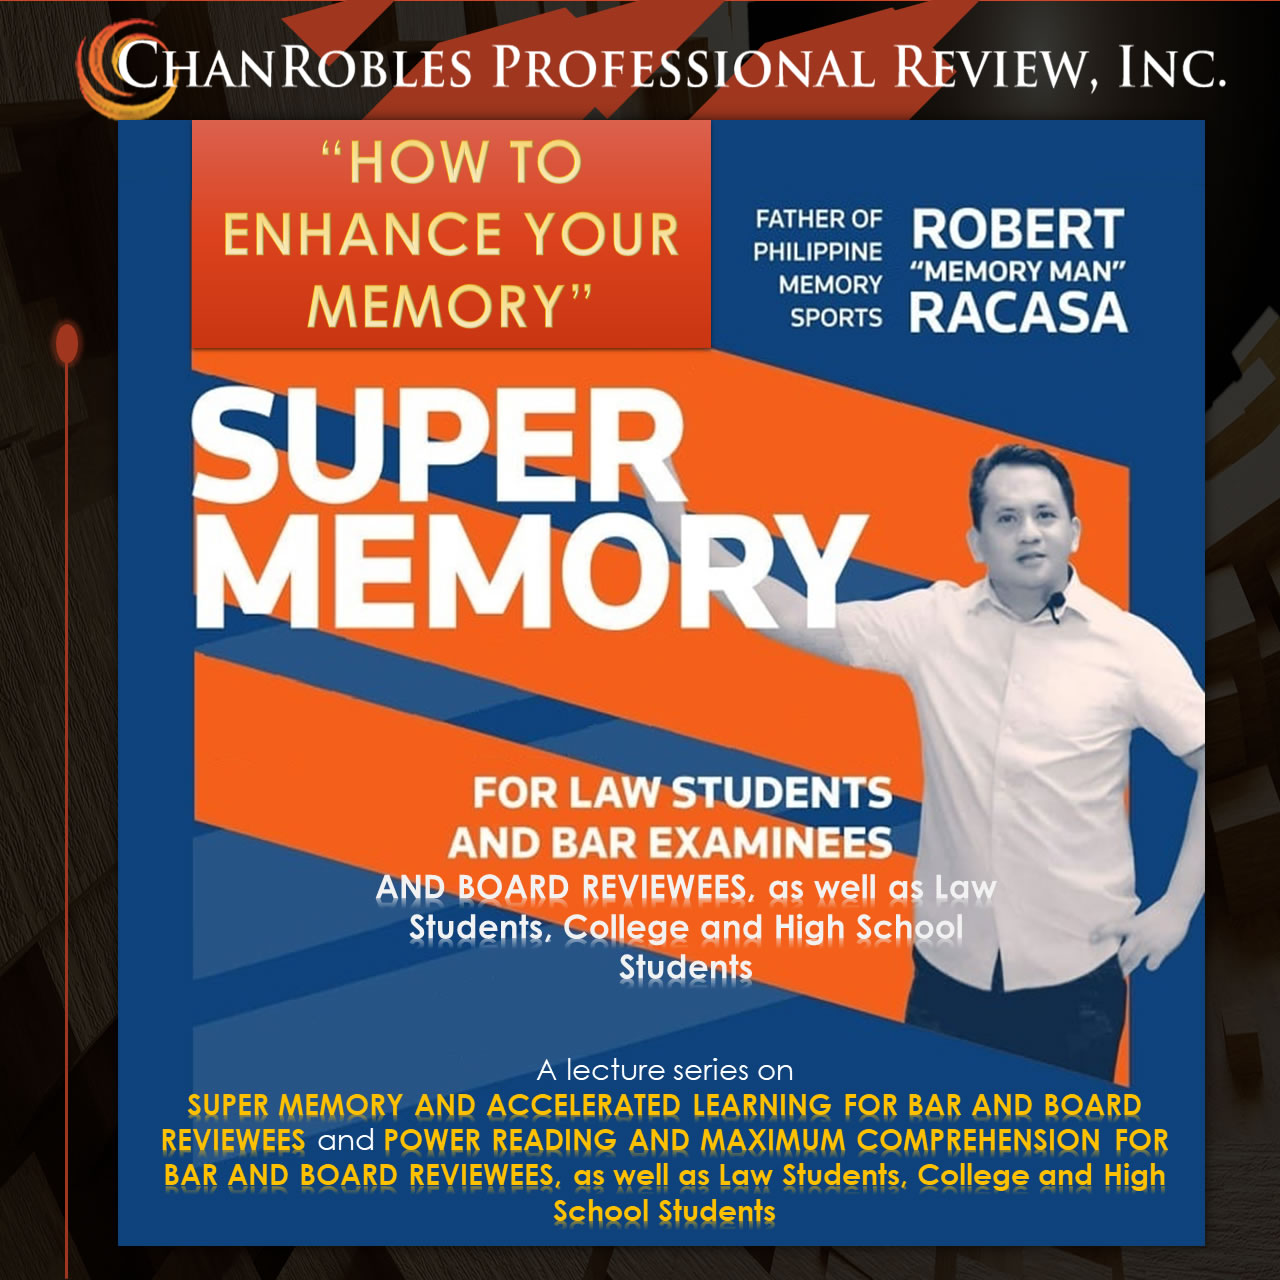 ChanRobles Special Lecture Series - Memory Man : www.chanroblesbar.com/memoryman